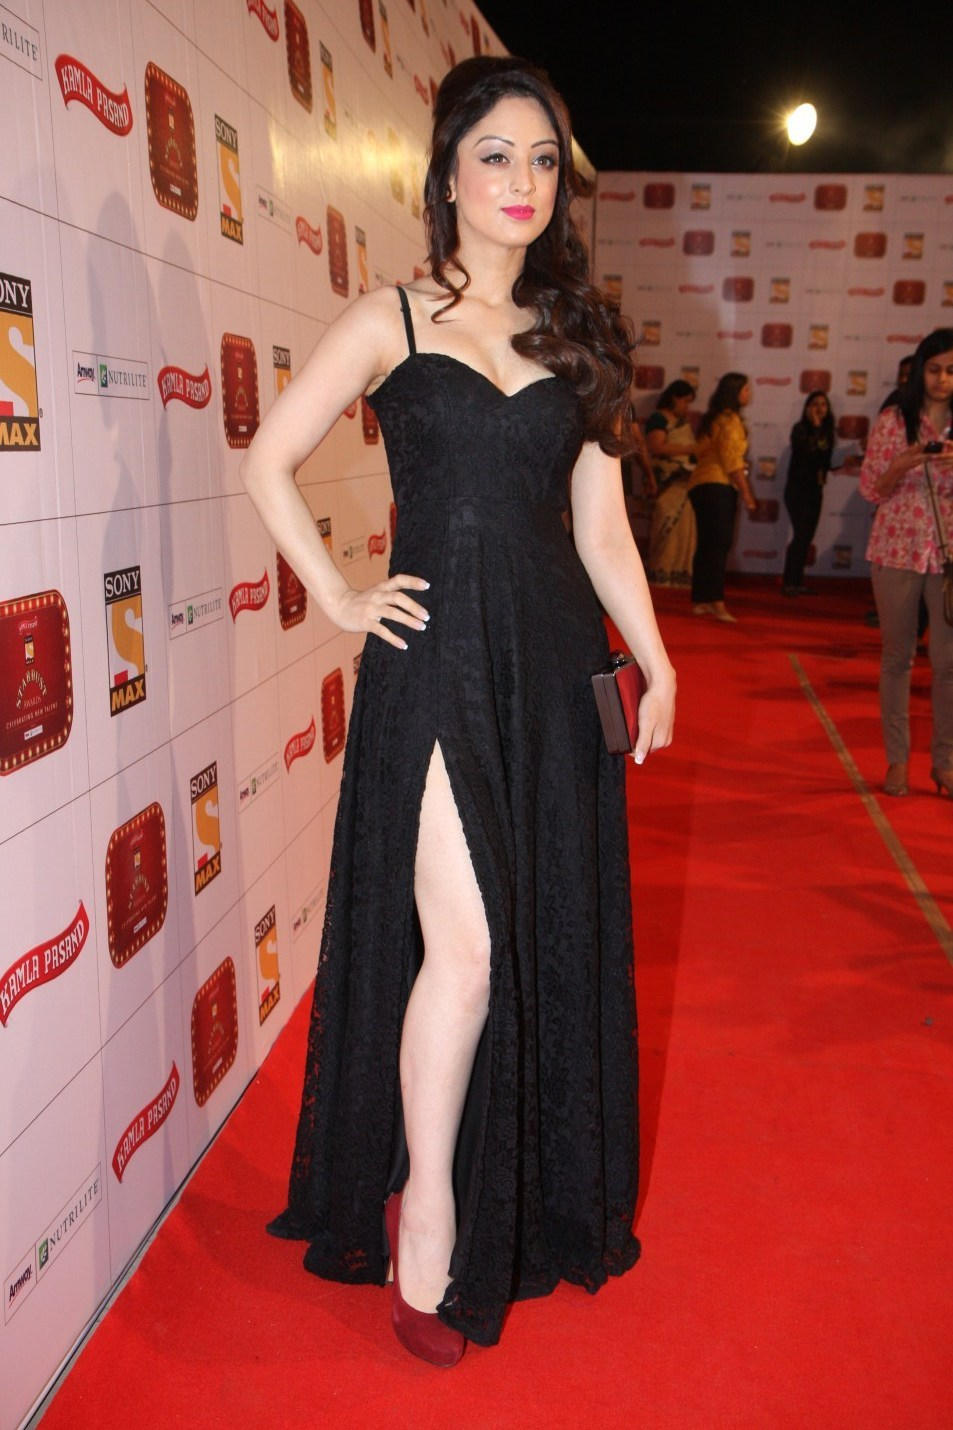 Sandeepa Dhar sexy in black dress